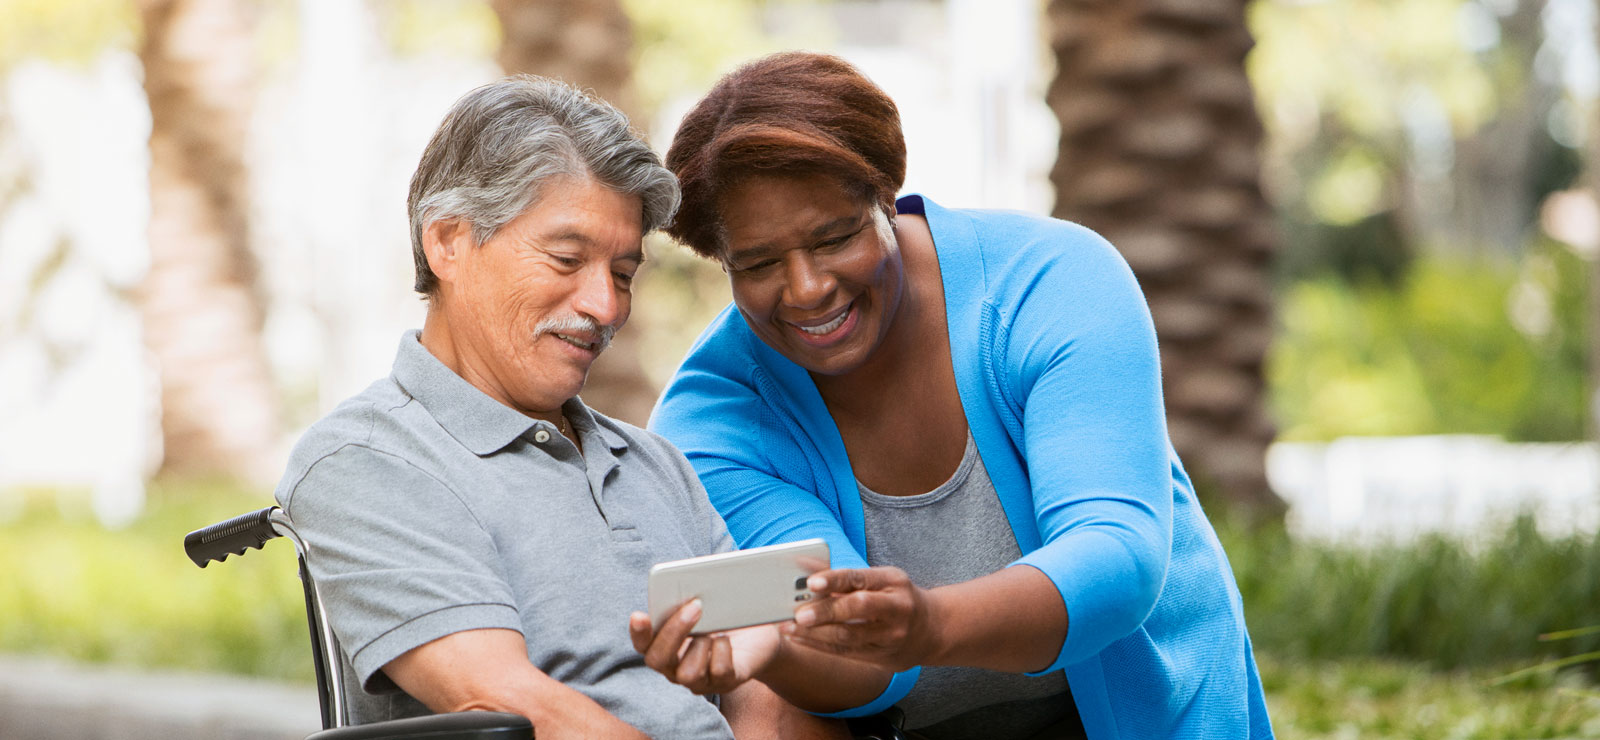 Smiling woman leans in to show man in wheel chair a smart phone screen.